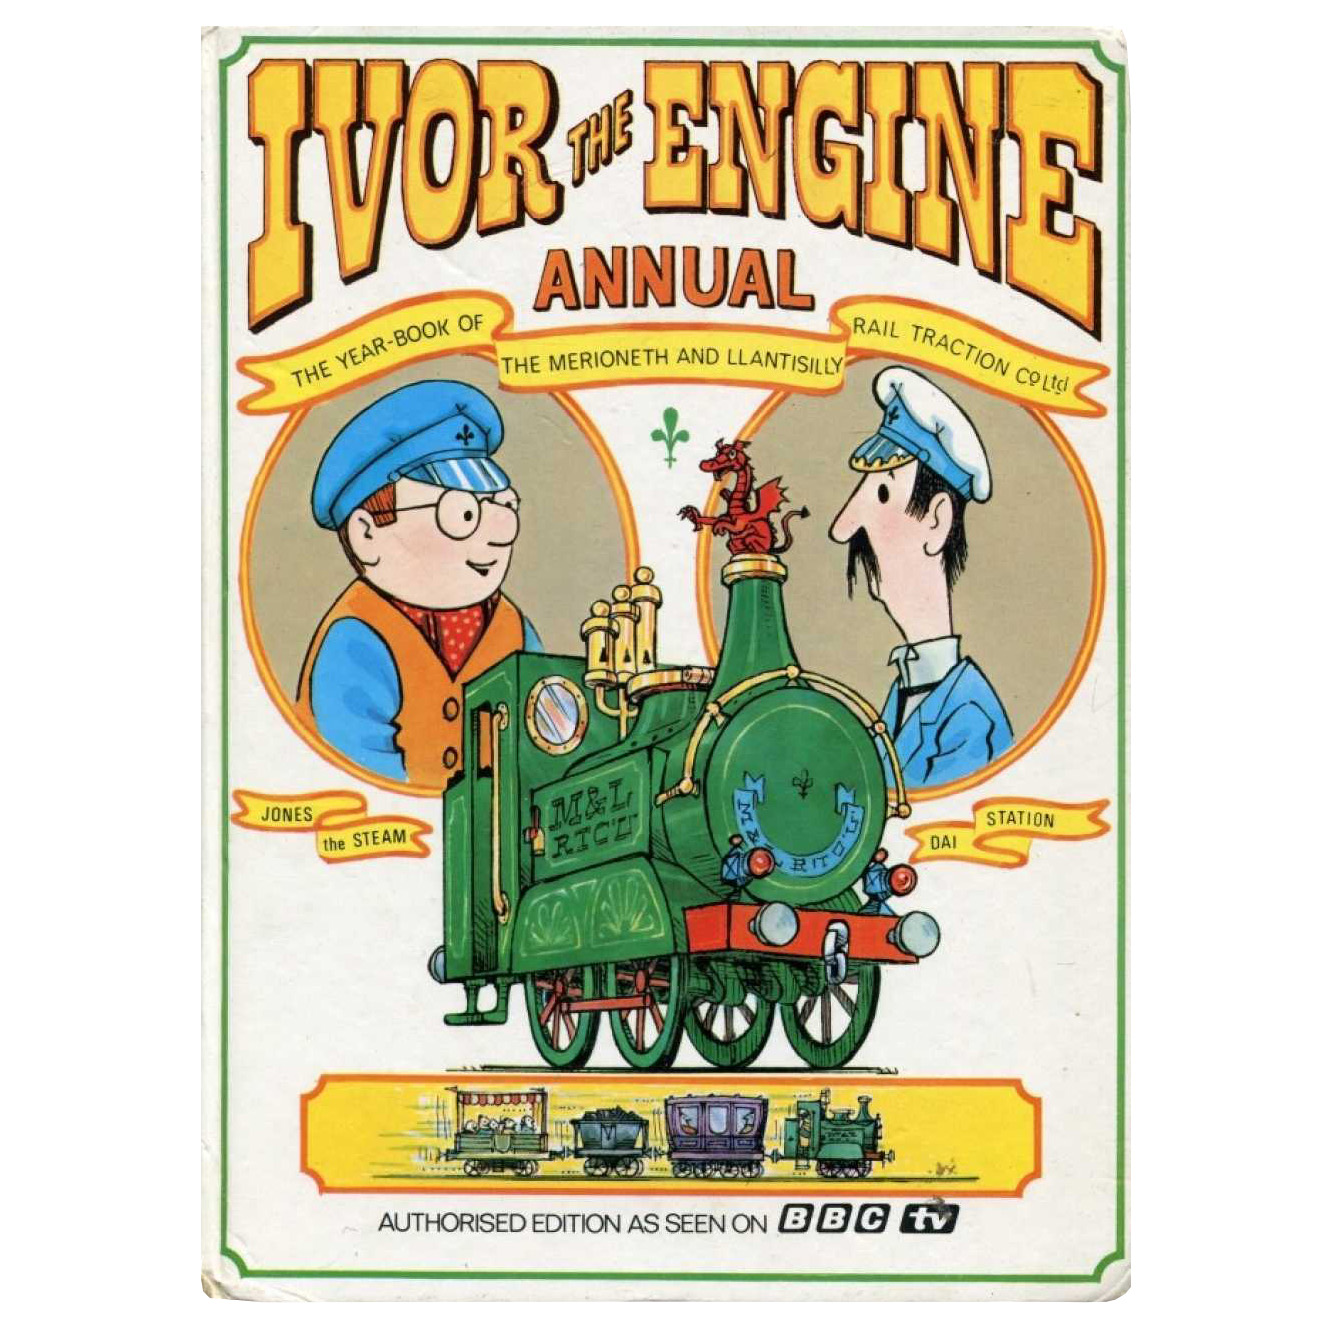 Scriberia top five Christmas annuals Ivor the Engine annual